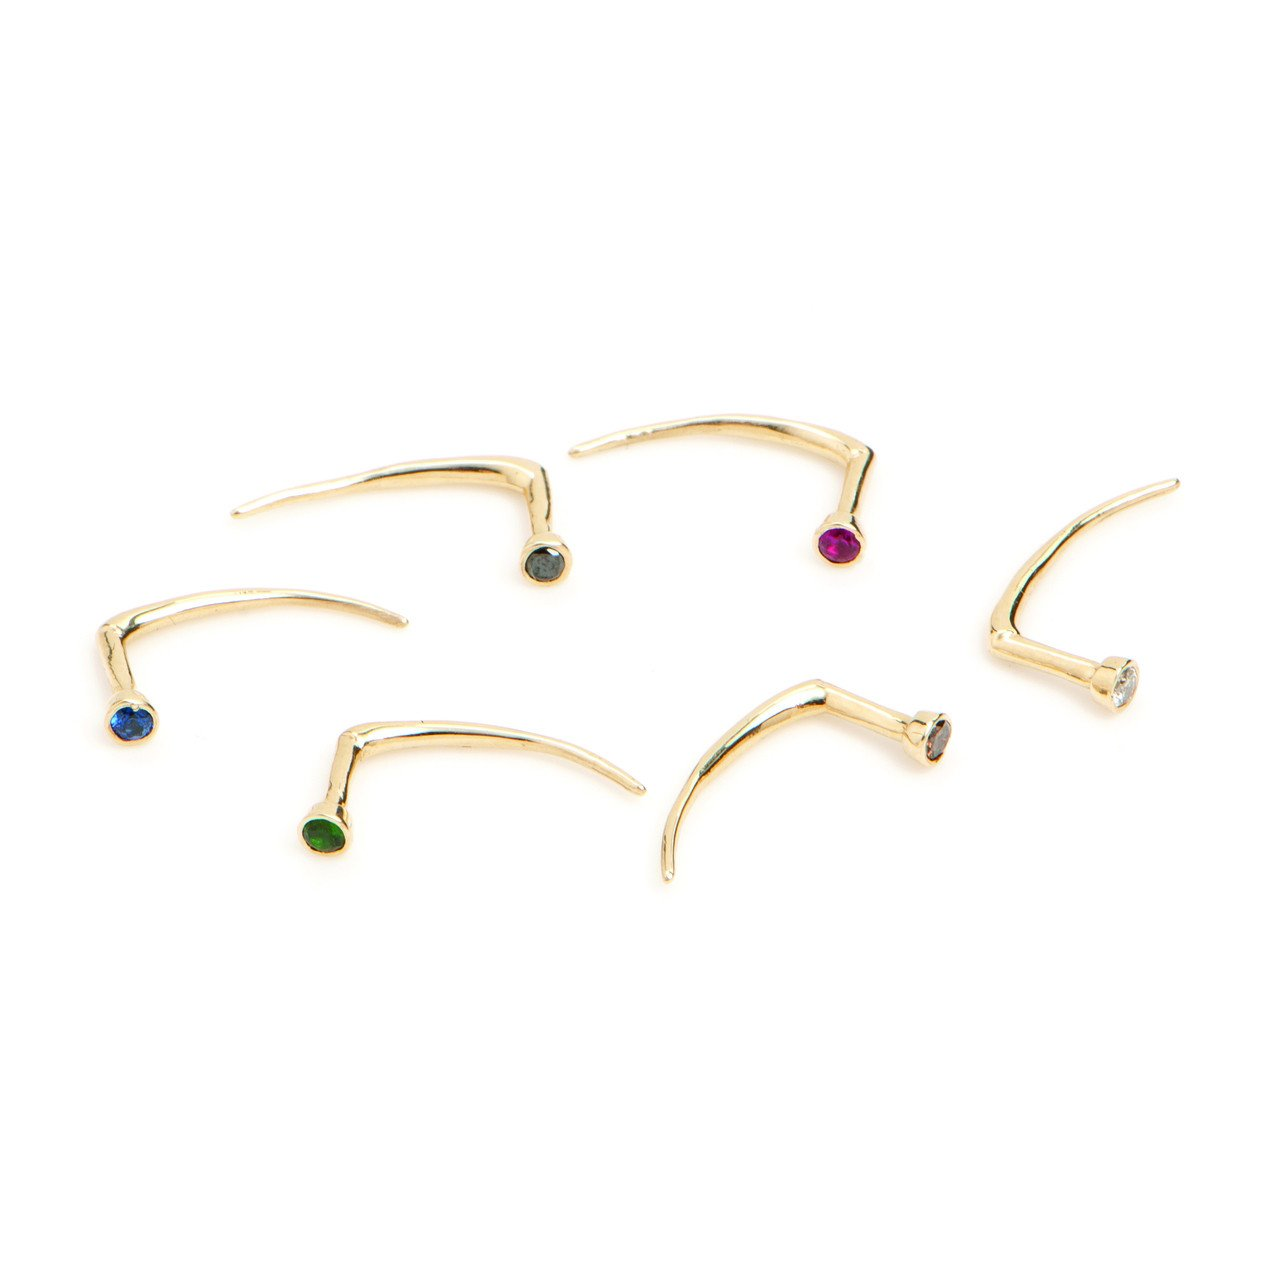 Infinite Tusk Earring With Stone in Yellow Gold - Gabriela Artigas